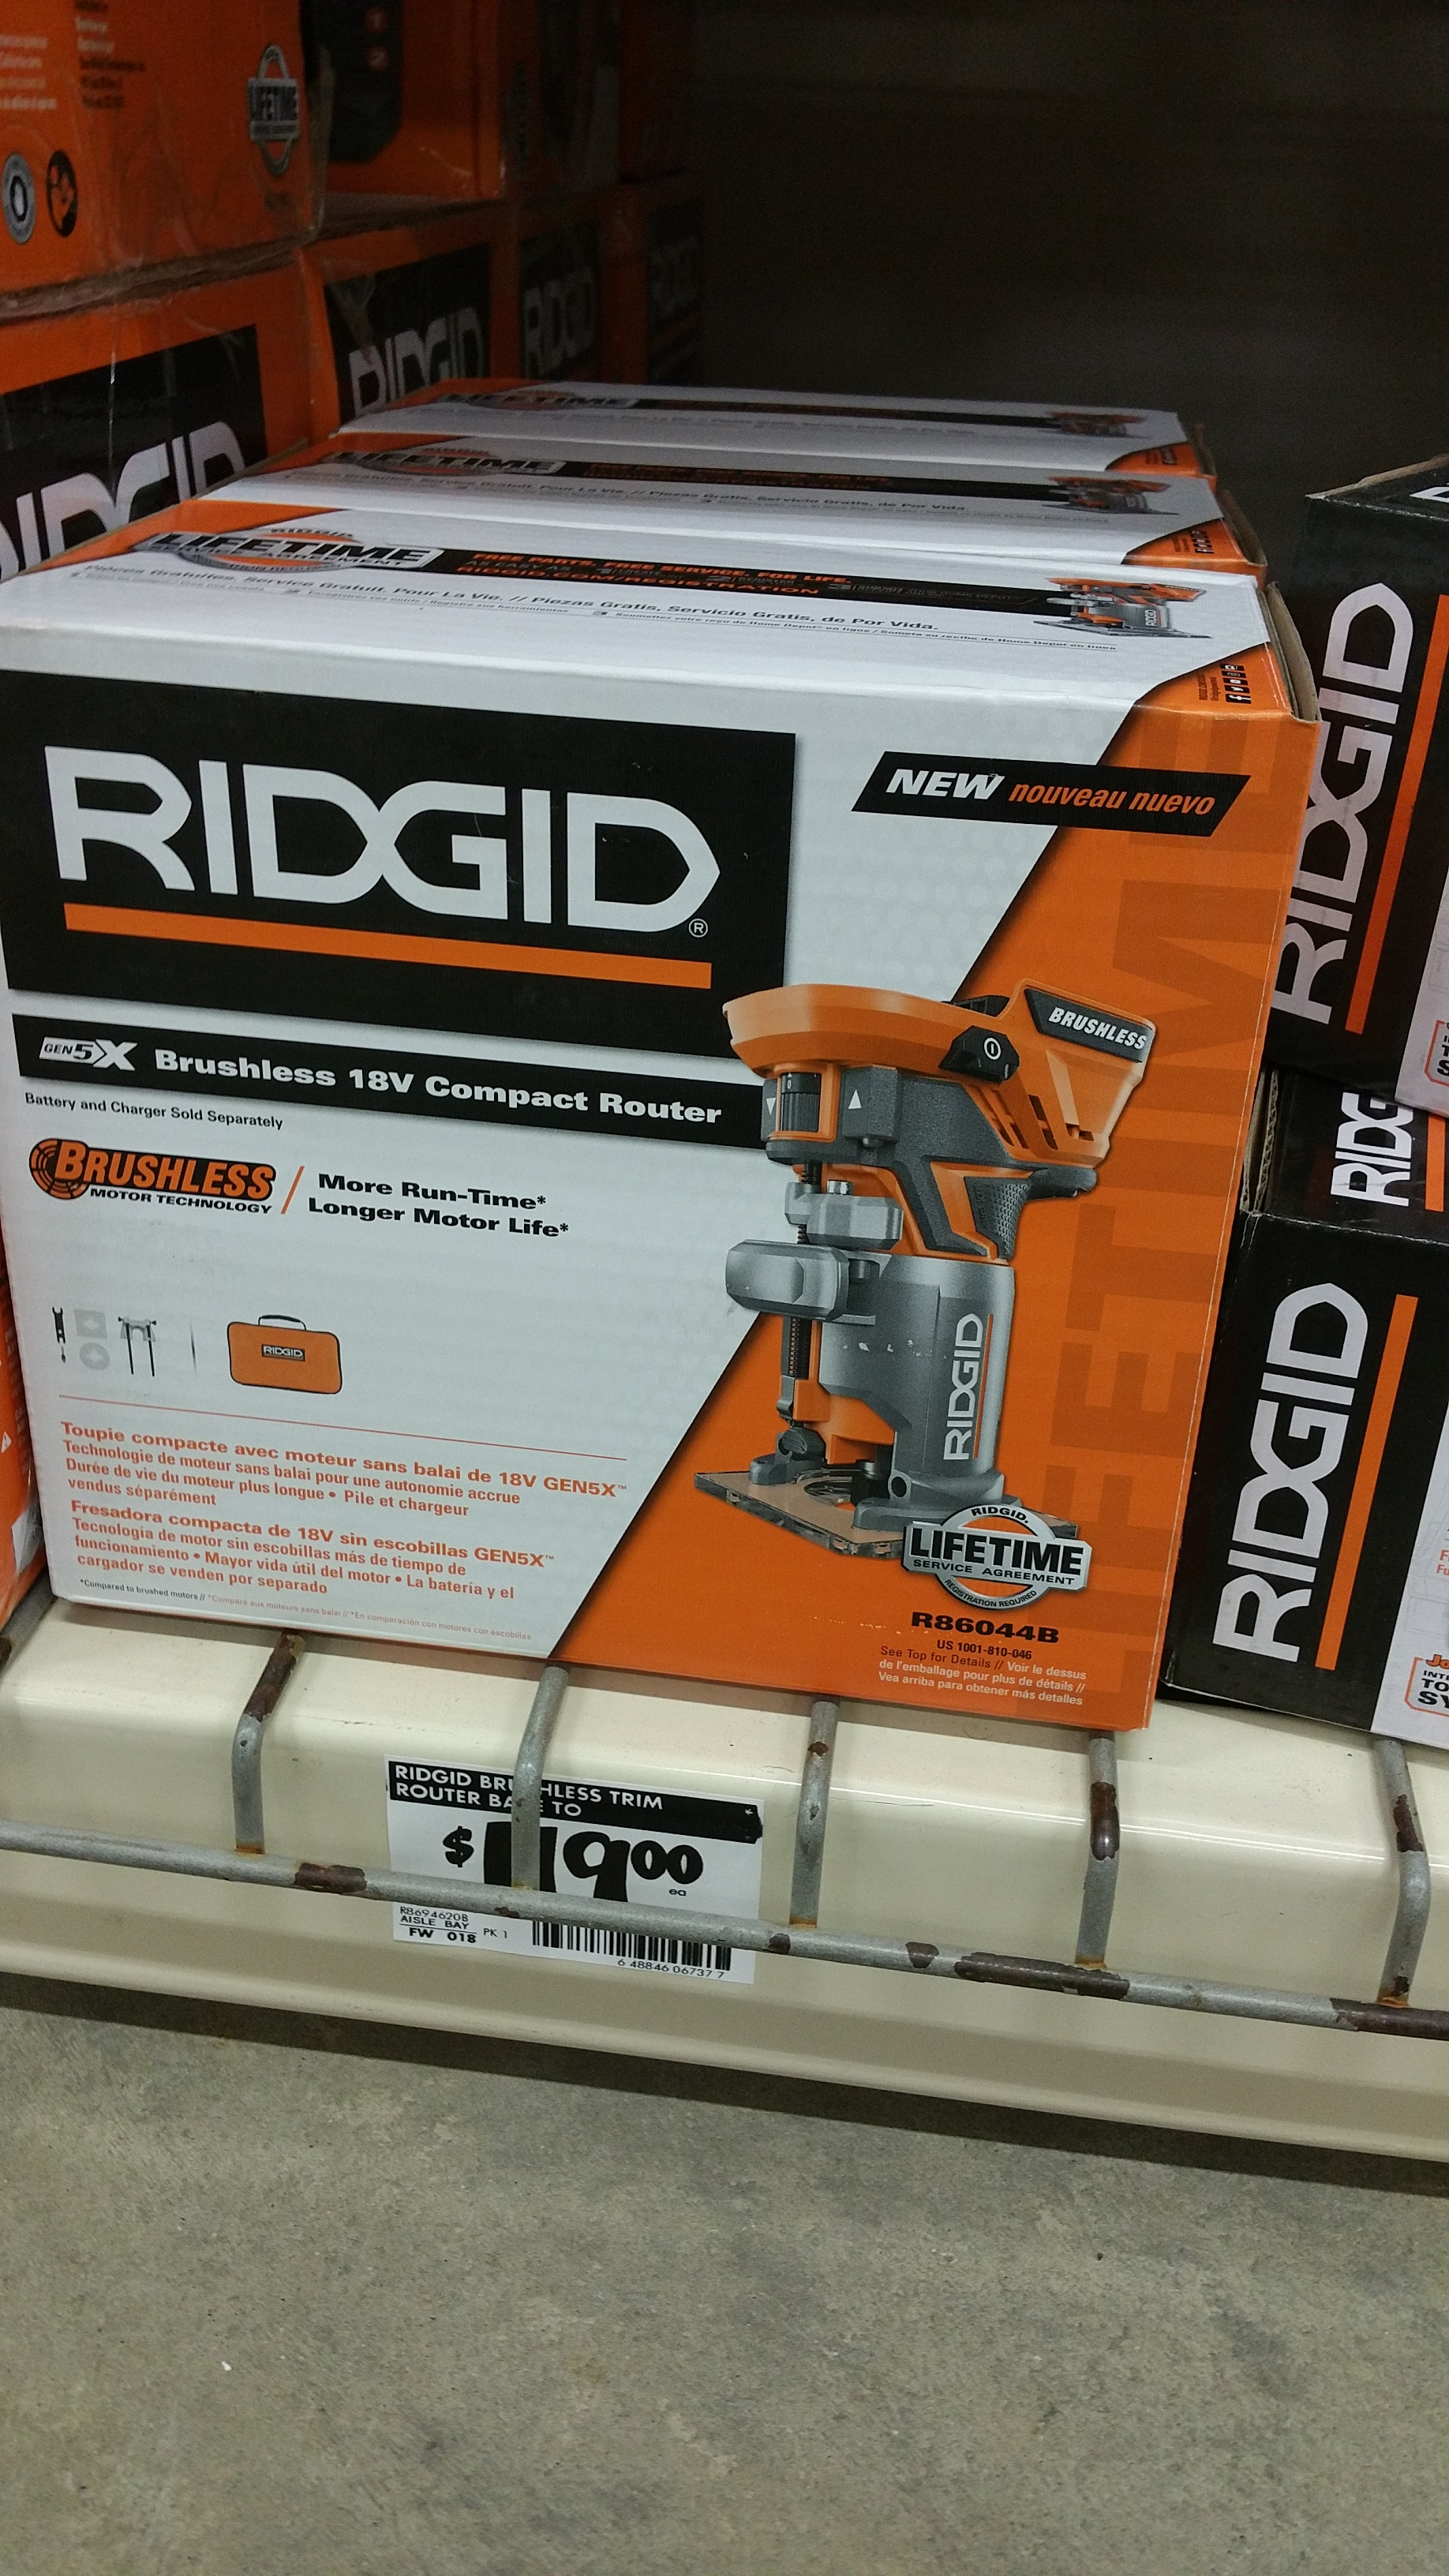 Ridgid 18V Brushless Router